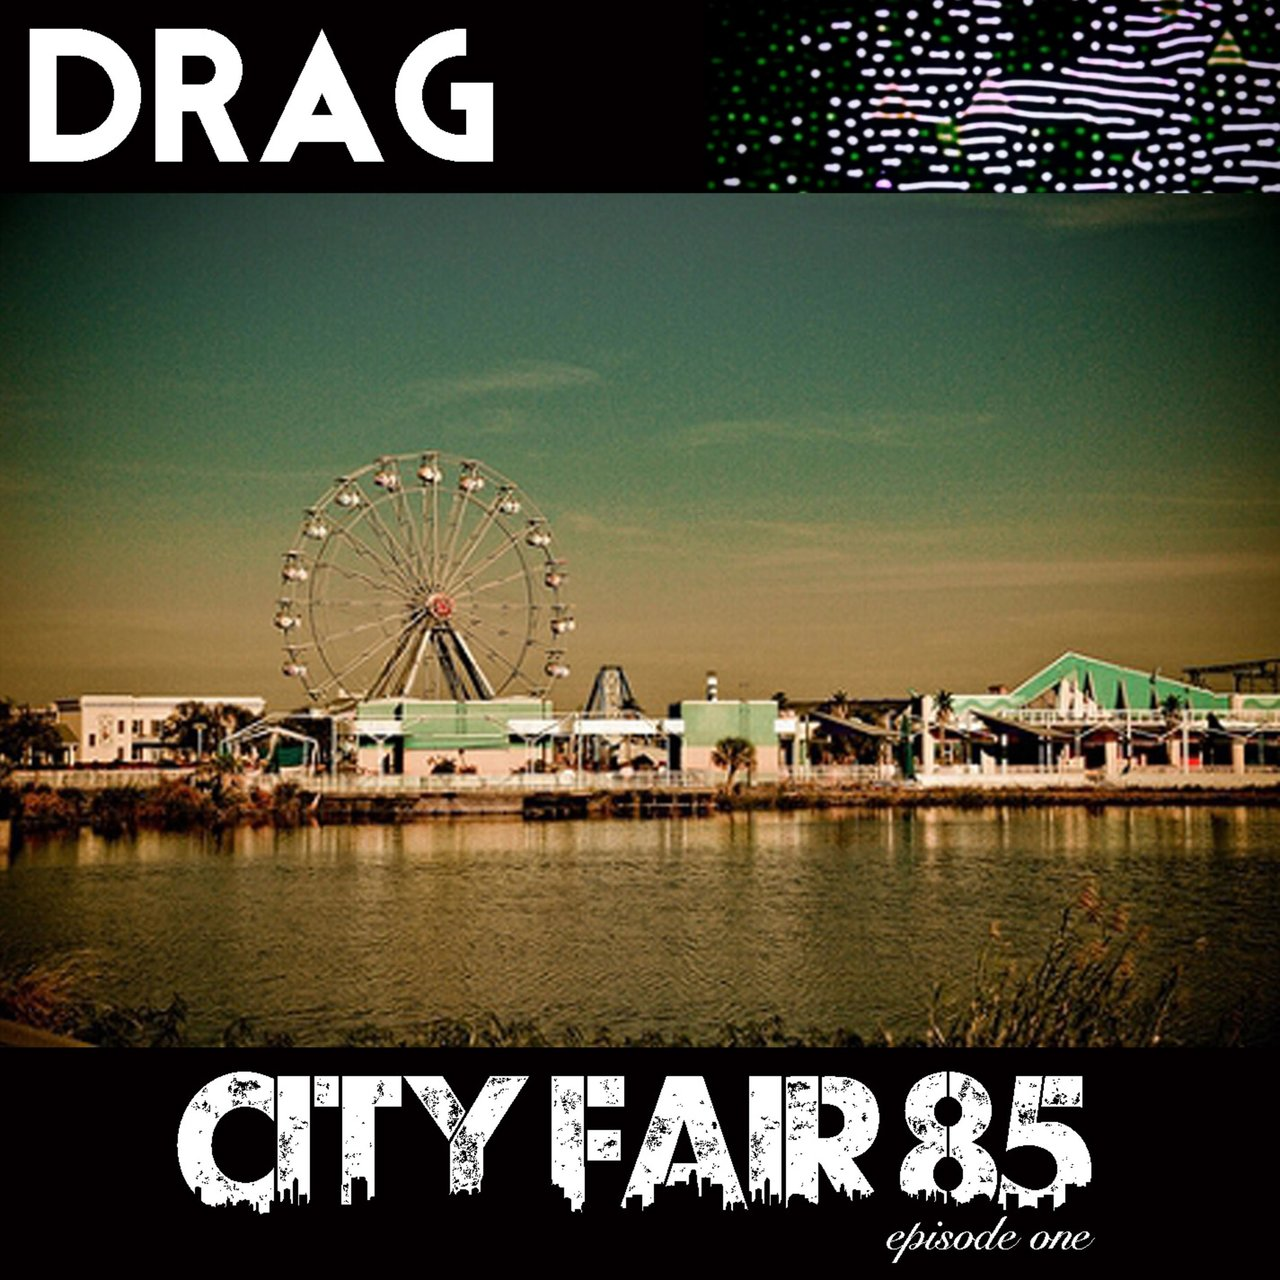 City Fair 85 Episode One